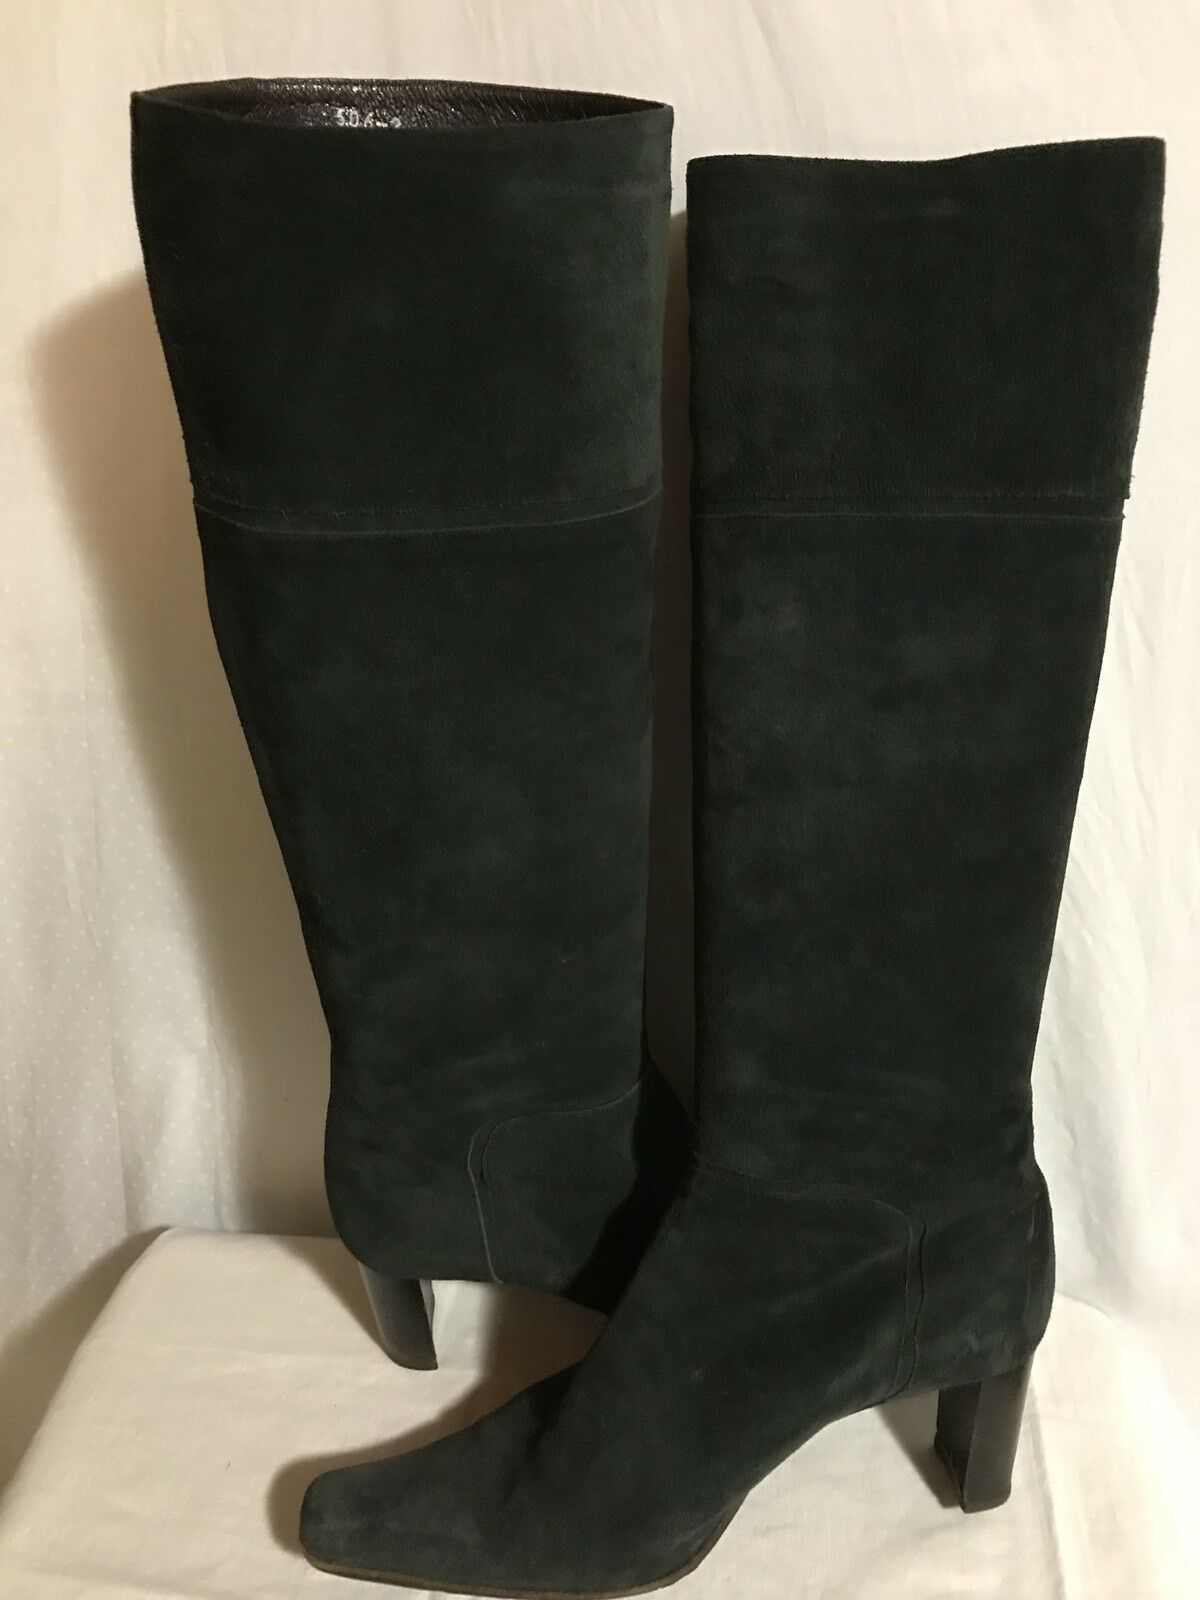 Gastone Lucioli Women's boots size 37 made in